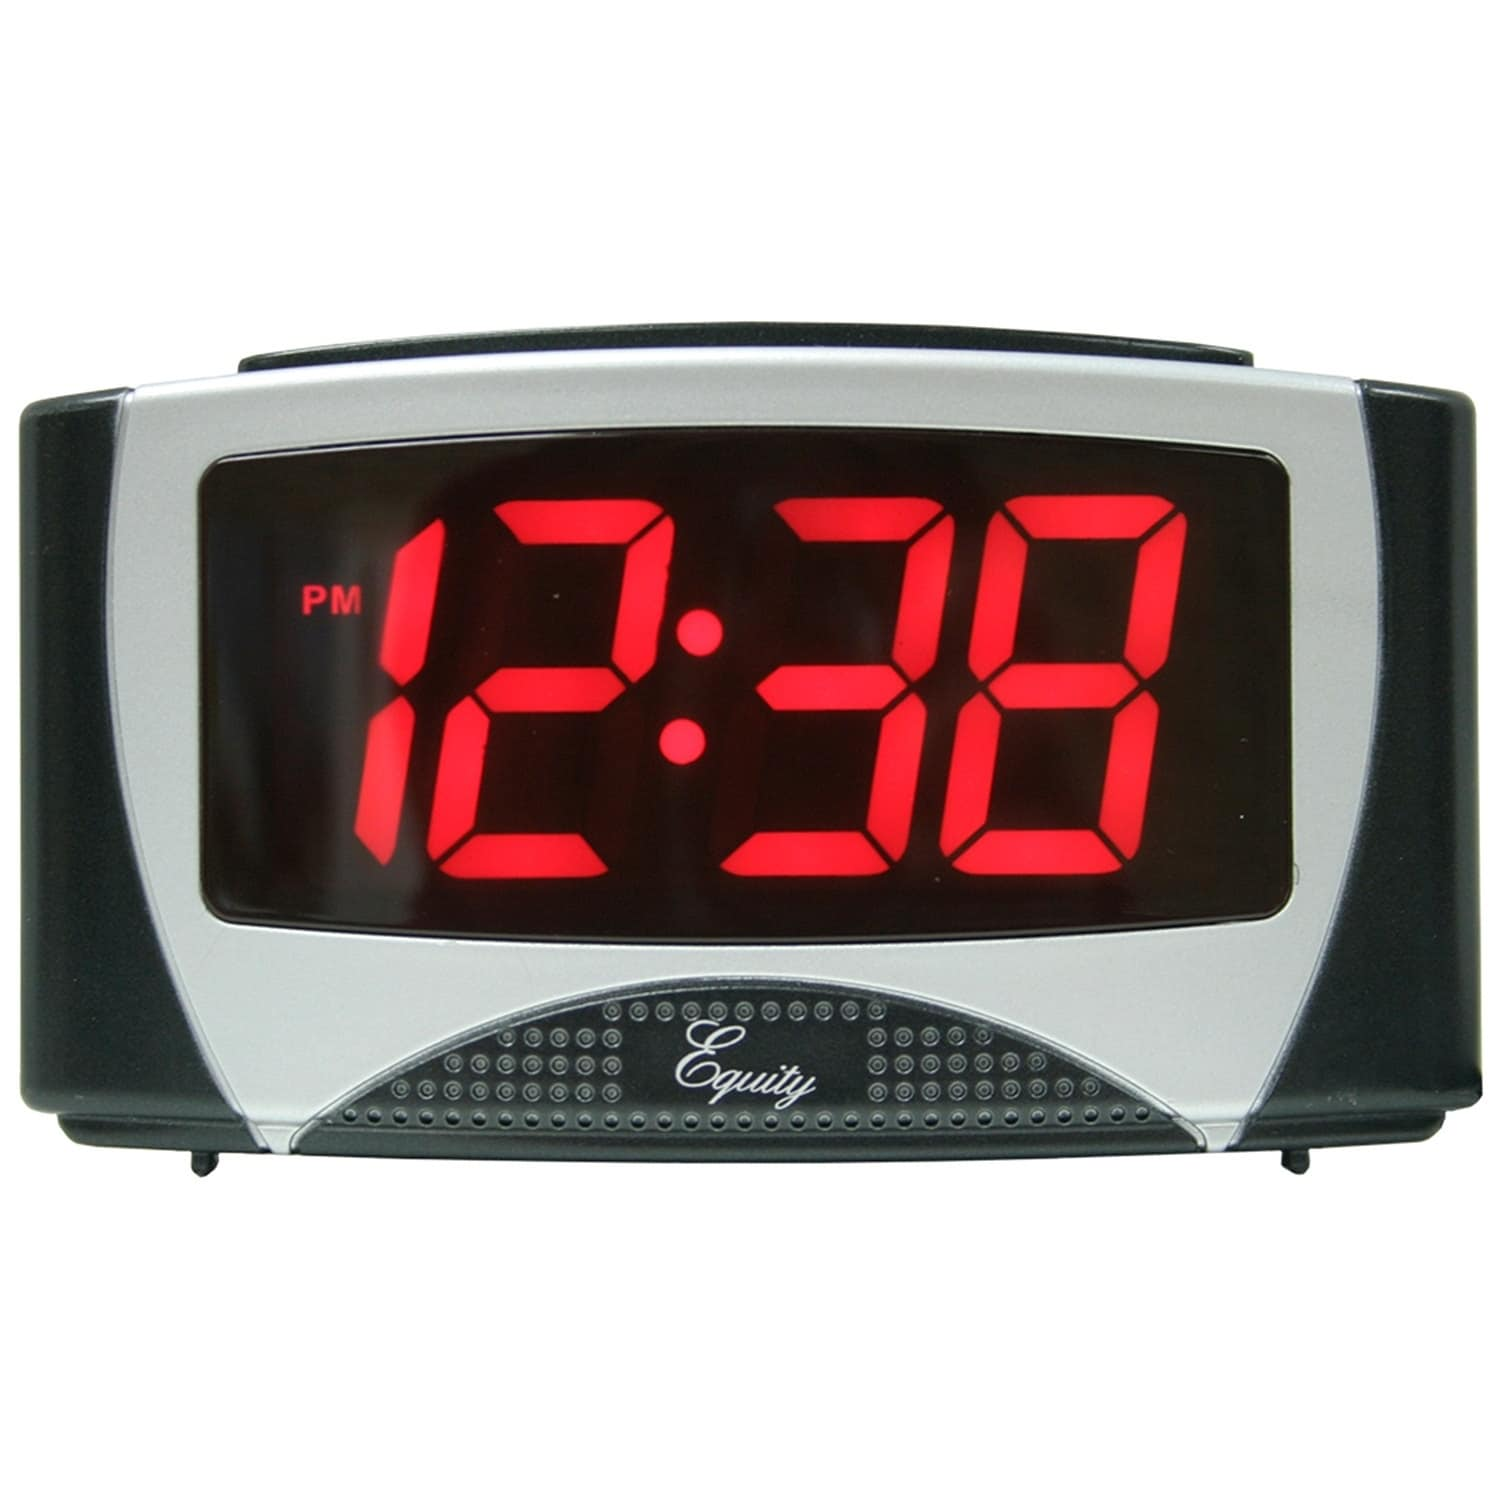 Equity by La Crosse 30029 Large LED Alarm Clock with 1.2 ...